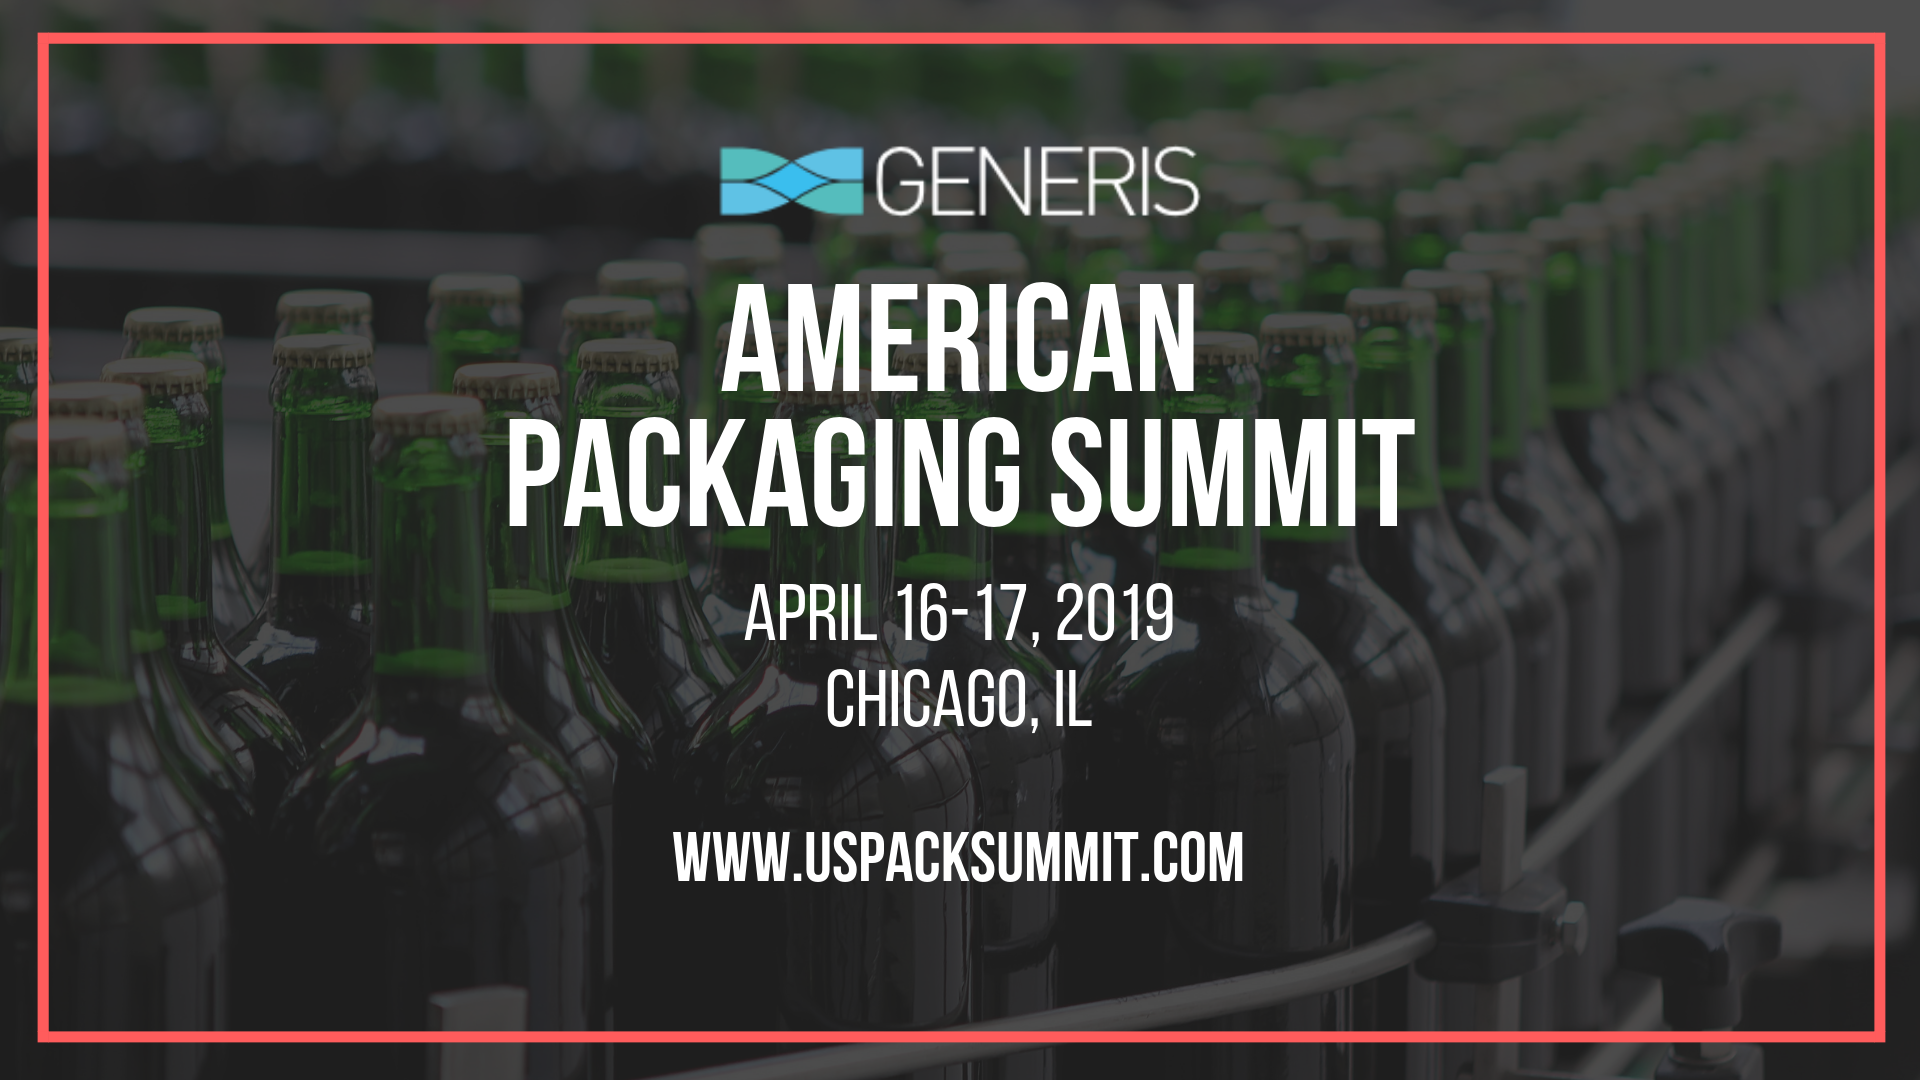 American Packaging Summit 2019 | Generis Group